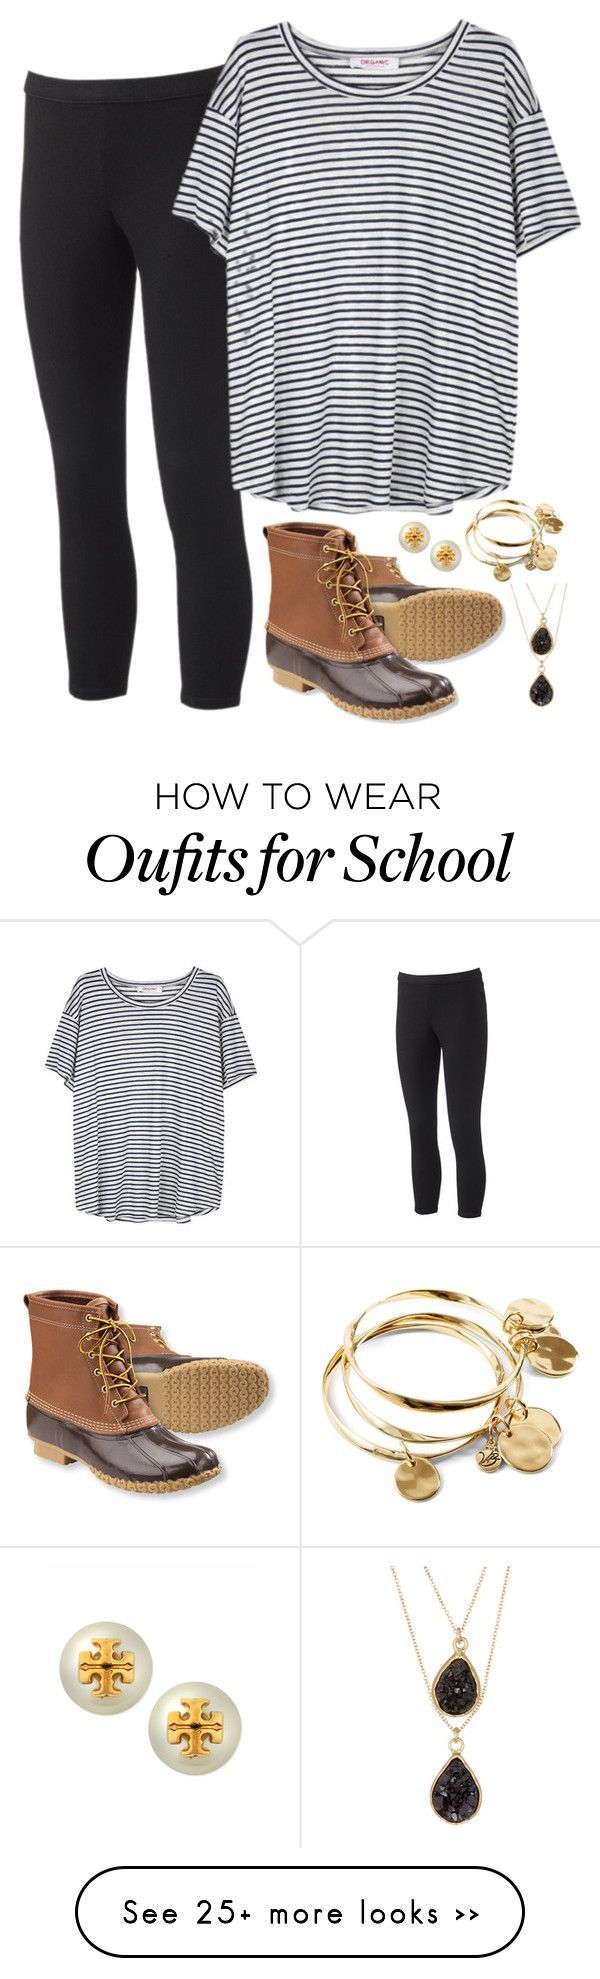 """what I wore to school"" by conleighh on Polyvore featuring moda, Vera Bradley, L.L.Bean, Jennifer Lopez, Organic by John Patrick, 14th & Union e Tory Burch"